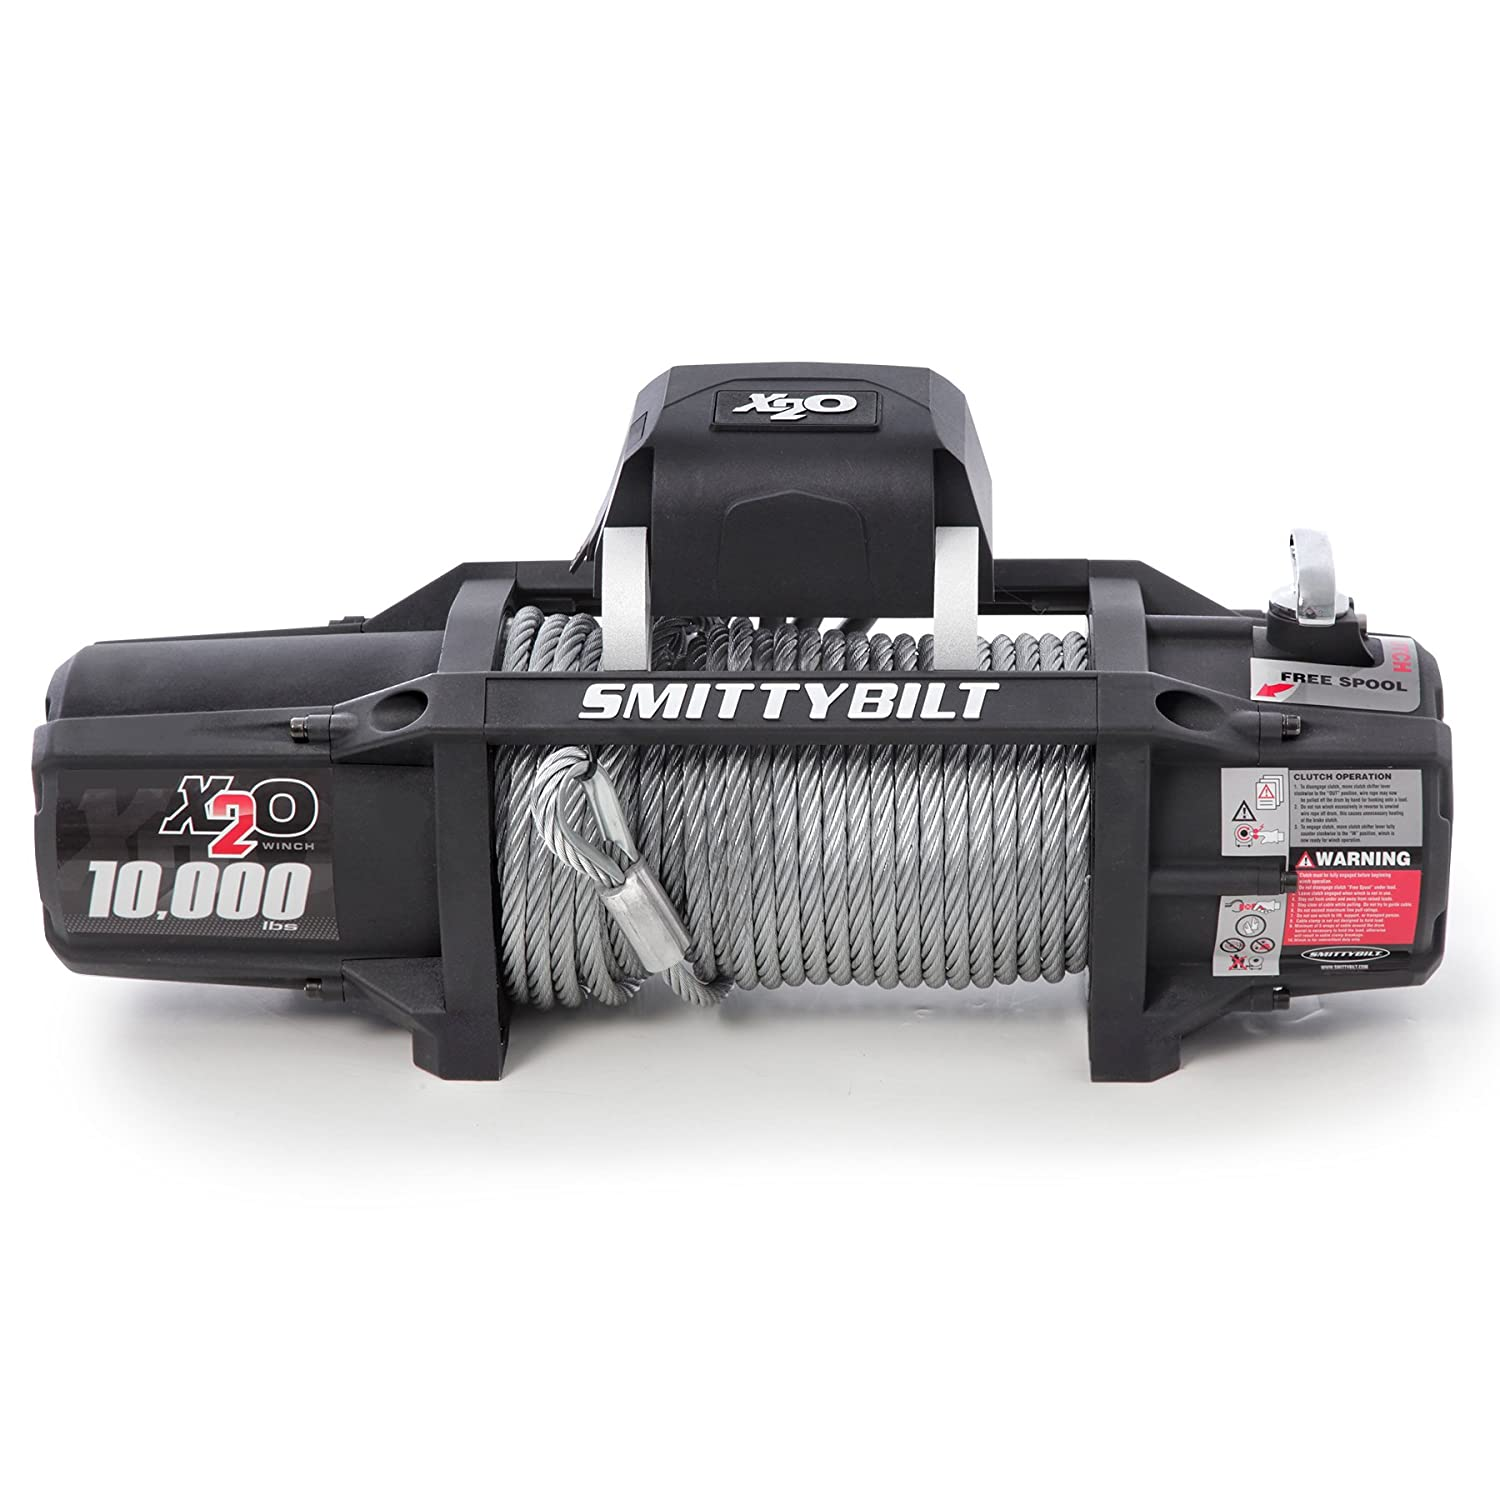 Smittybilt 97510 X 2O Waterproof Winch - 10000 lb. Load Capacity